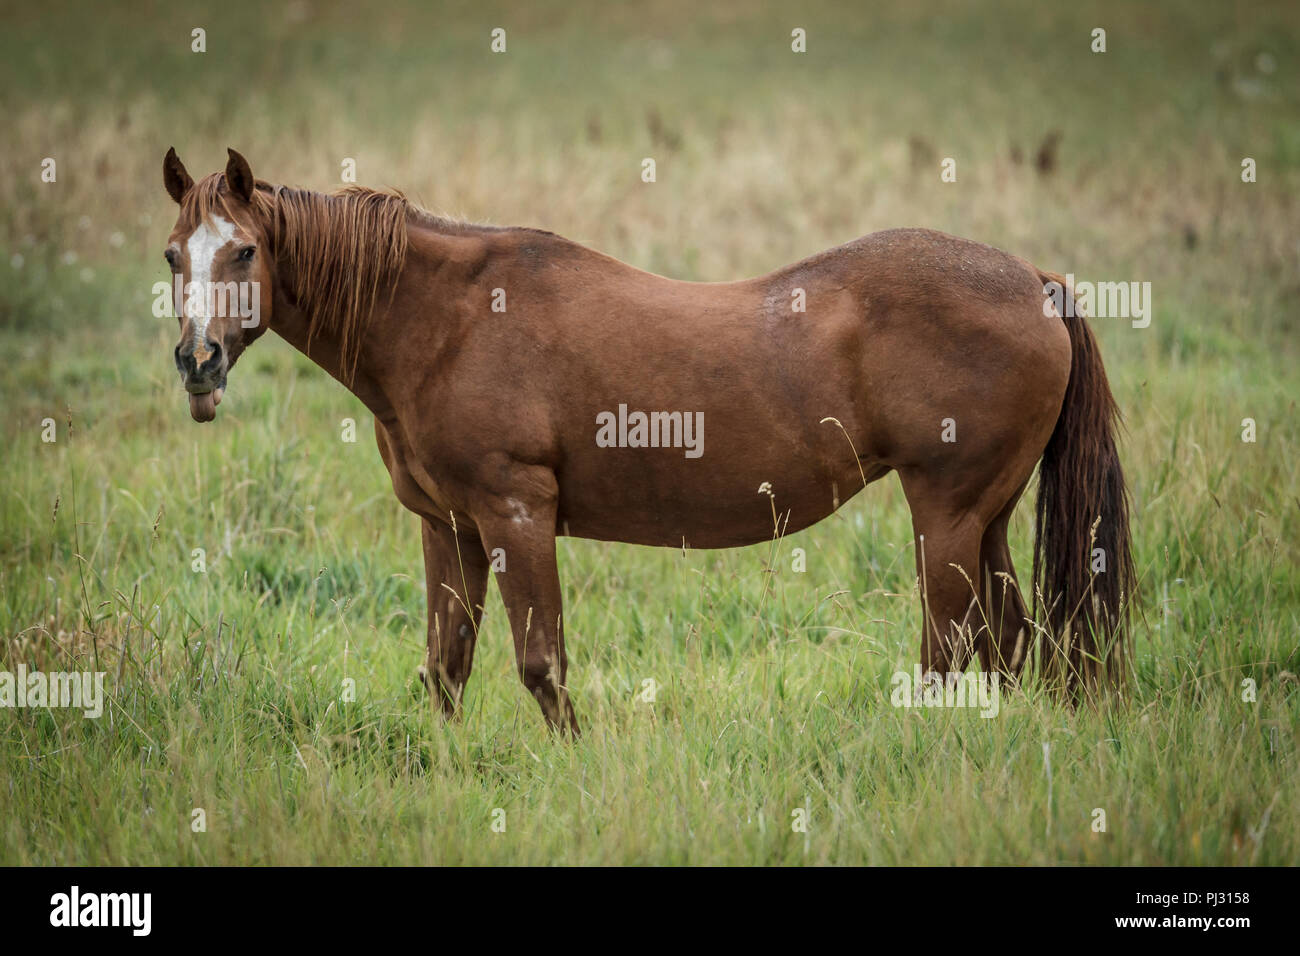 A chestnut colored horse stands in a grassy field near Hauser, Idaho. - Stock Image